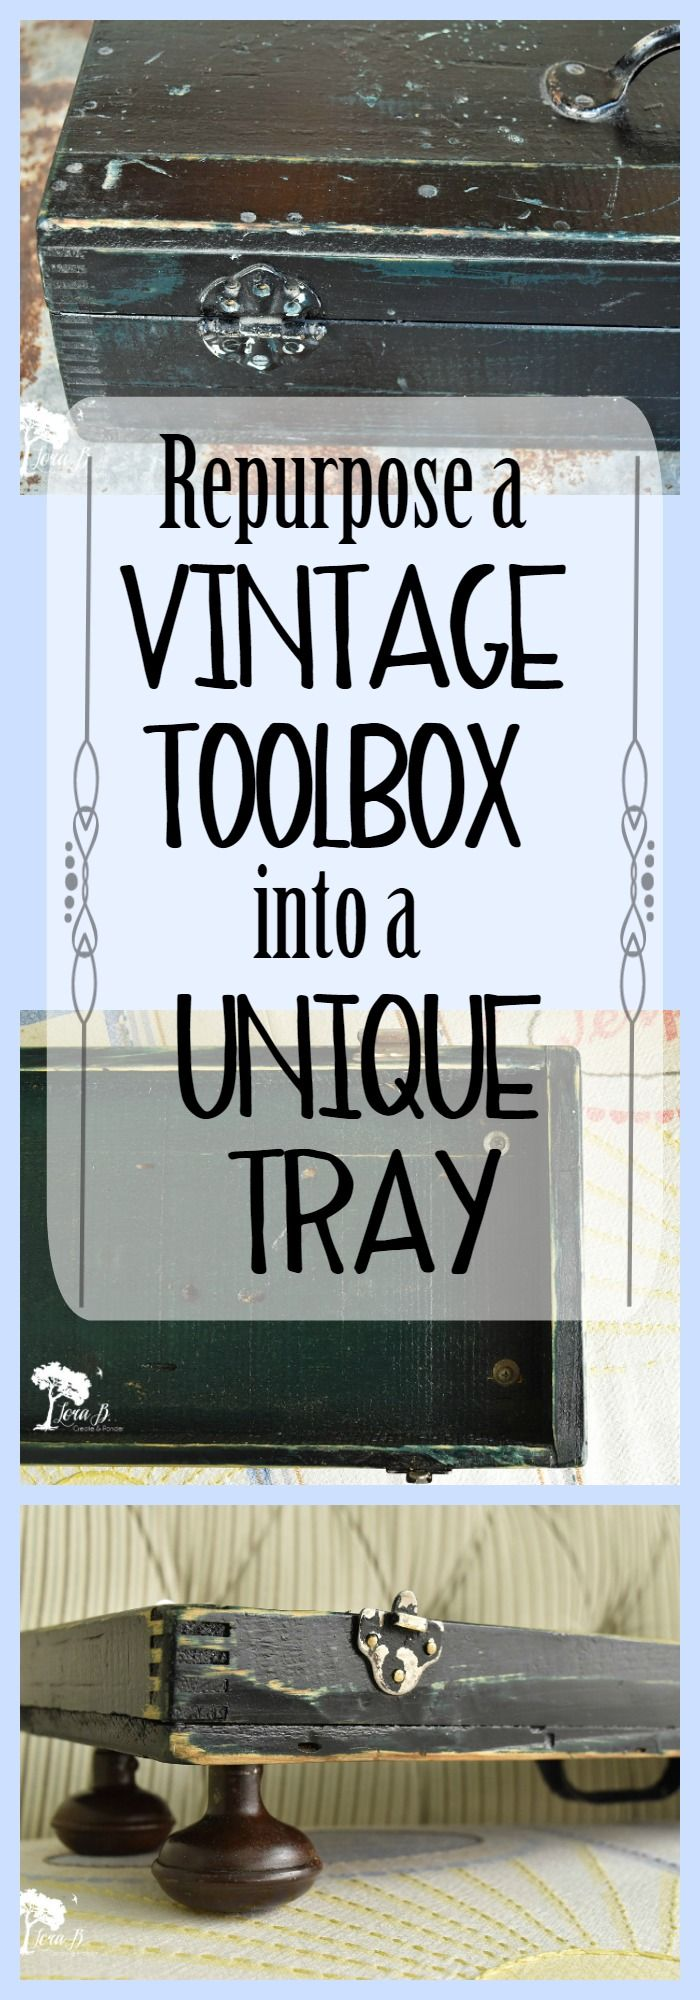 246 Best Junk Transformation Images On Pinterest Upcycling Repurposed Circuit Boards Recycled Board Clipboards Re Purpose An Old Toolbox Into Interesting Junky Tray